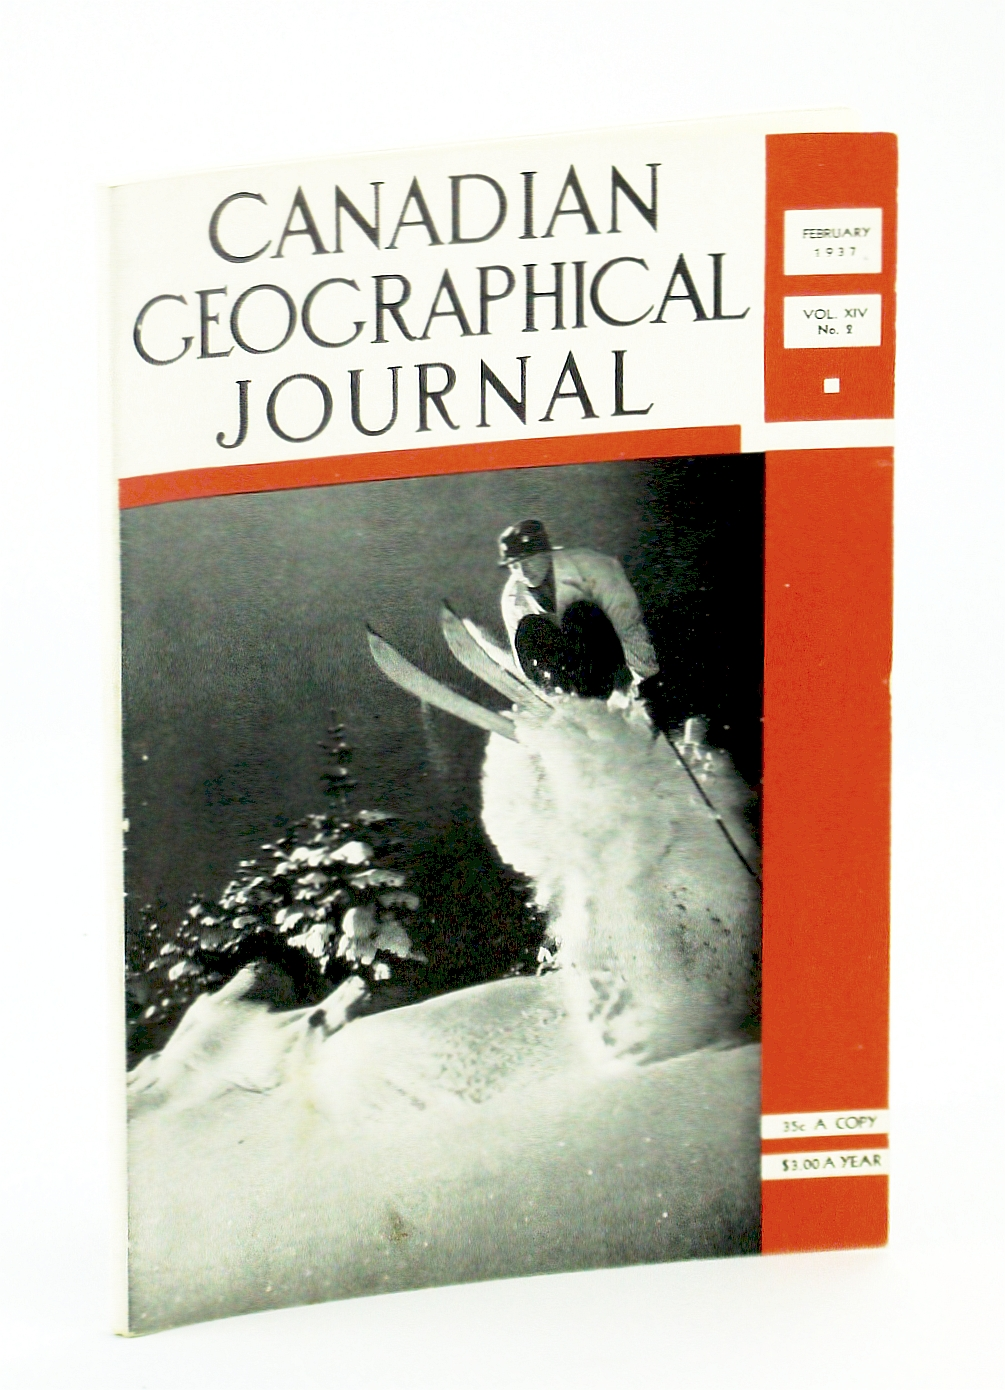 Image for Canadian Geographical Journal, February [Feb.] 1937, Vol. XIV, No. 2 - Trans-Canada Airway / Ski-ing [Skiing] In Canada